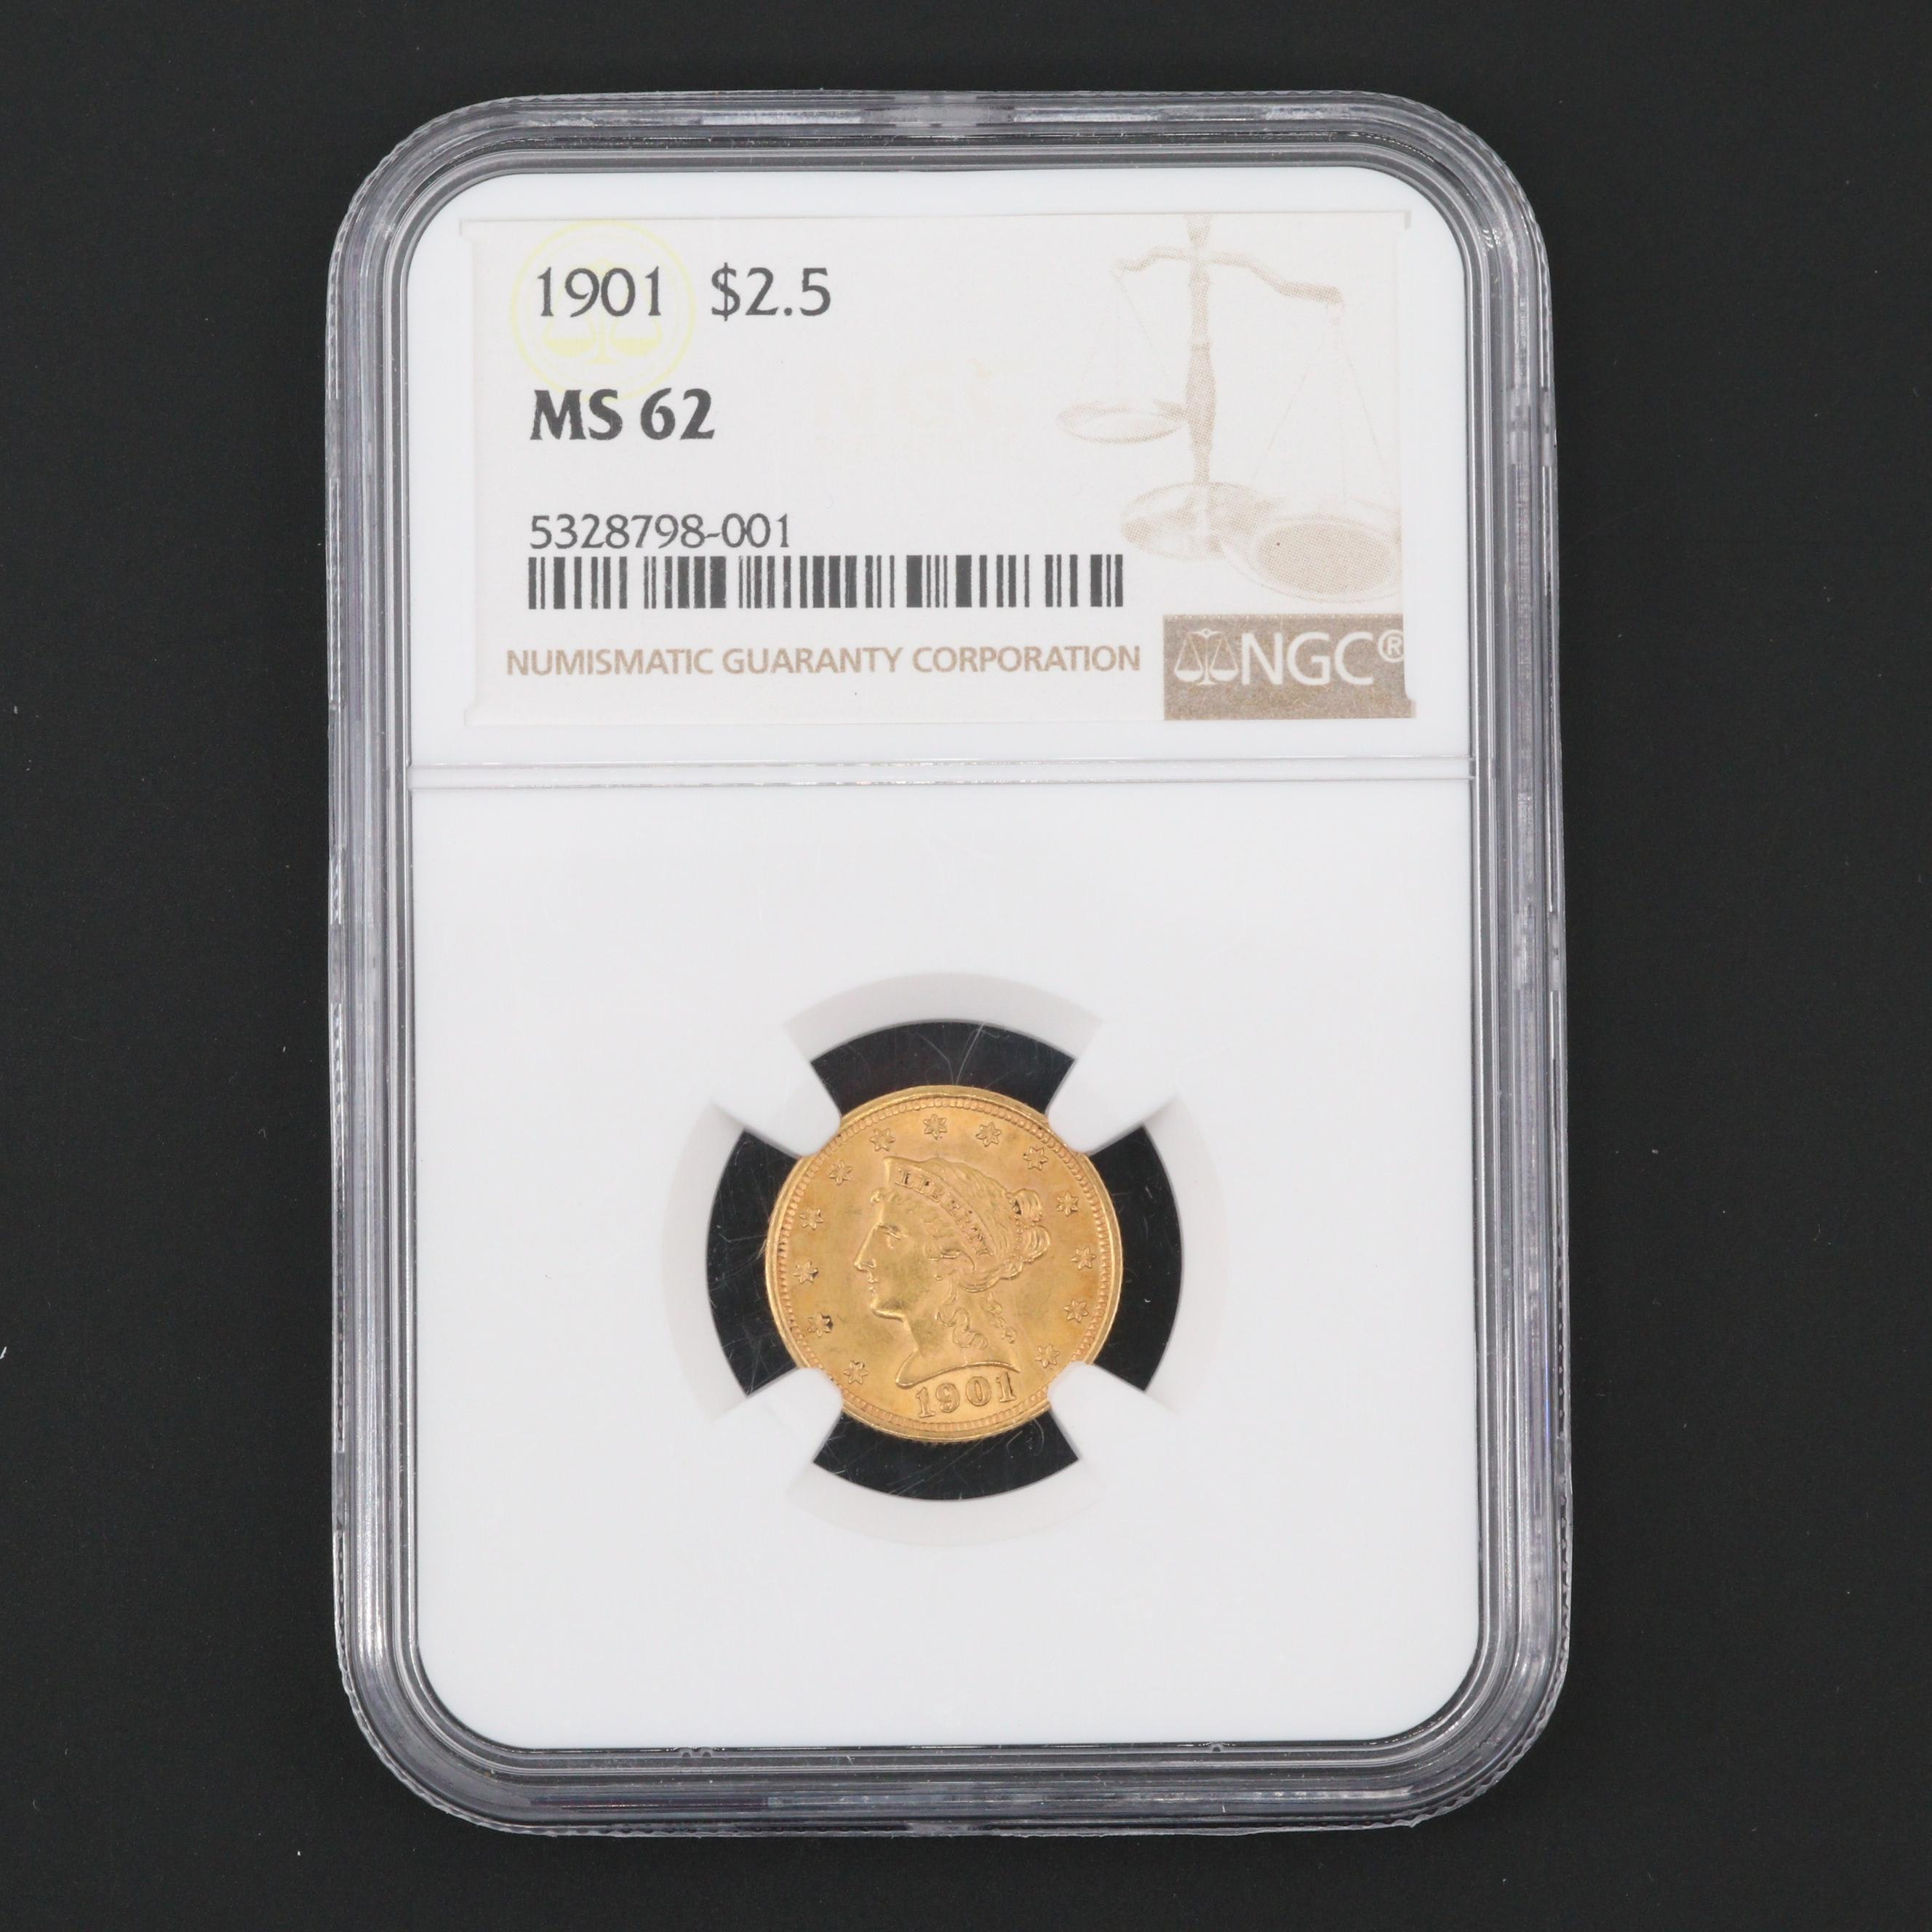 NGC Graded MS62 1901 Liberty Head $2.50 Quarter Eagle Gold Coin